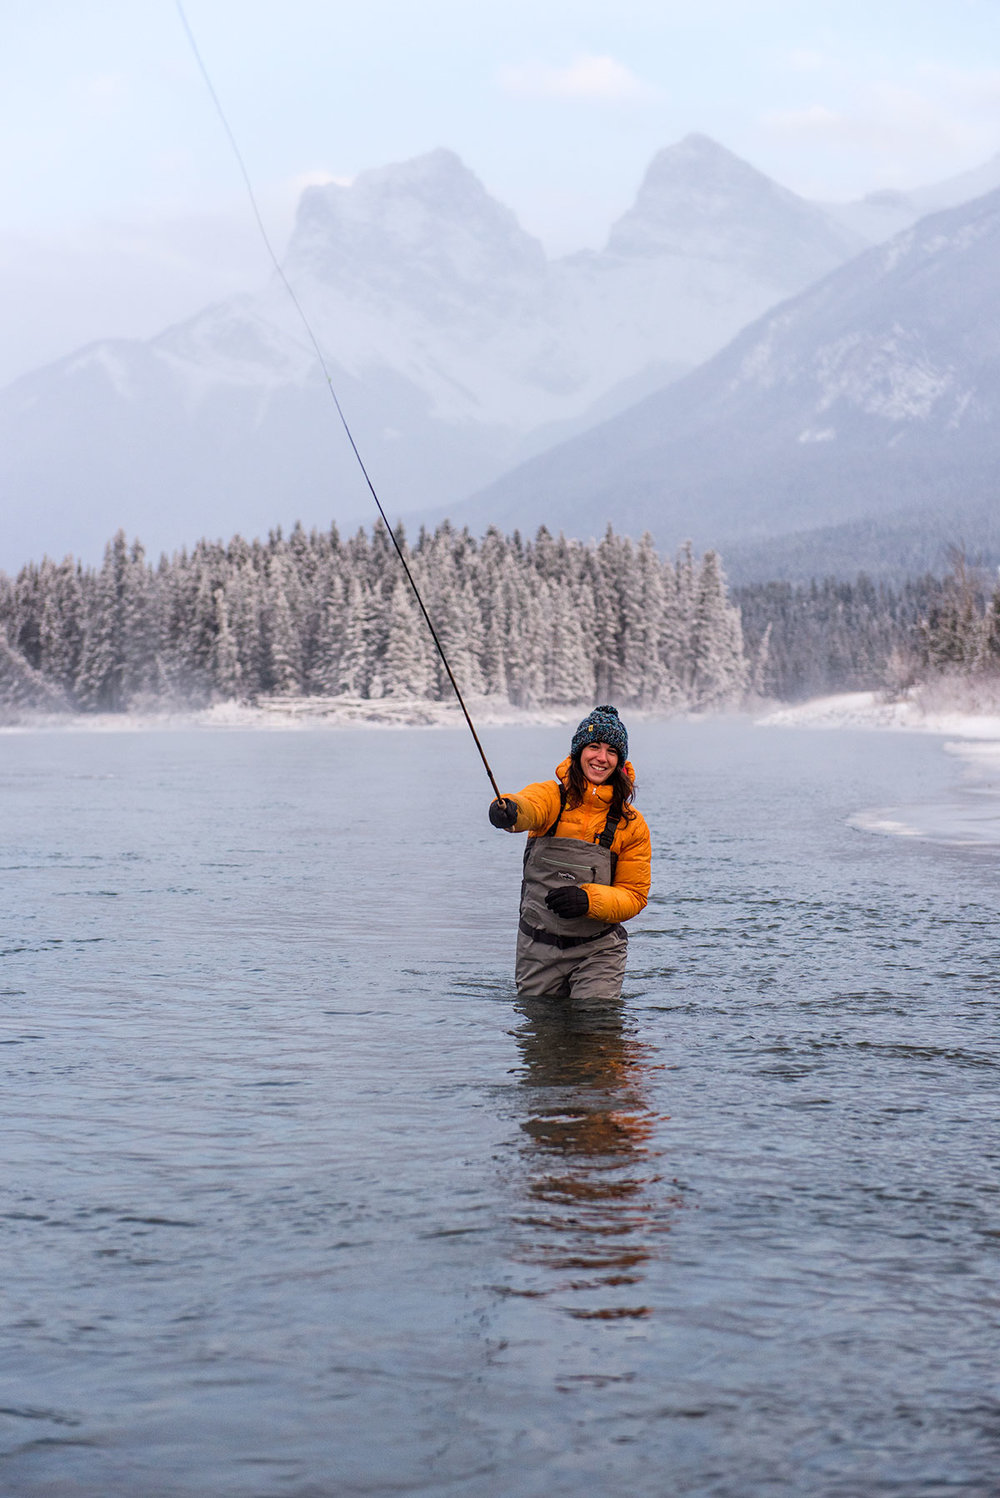 austin-trigg-patagonia-banff-alberta-winter-canmore-bow-river-casting-fly-fishing-canada-lifestyle-adventure-mountains.jpg